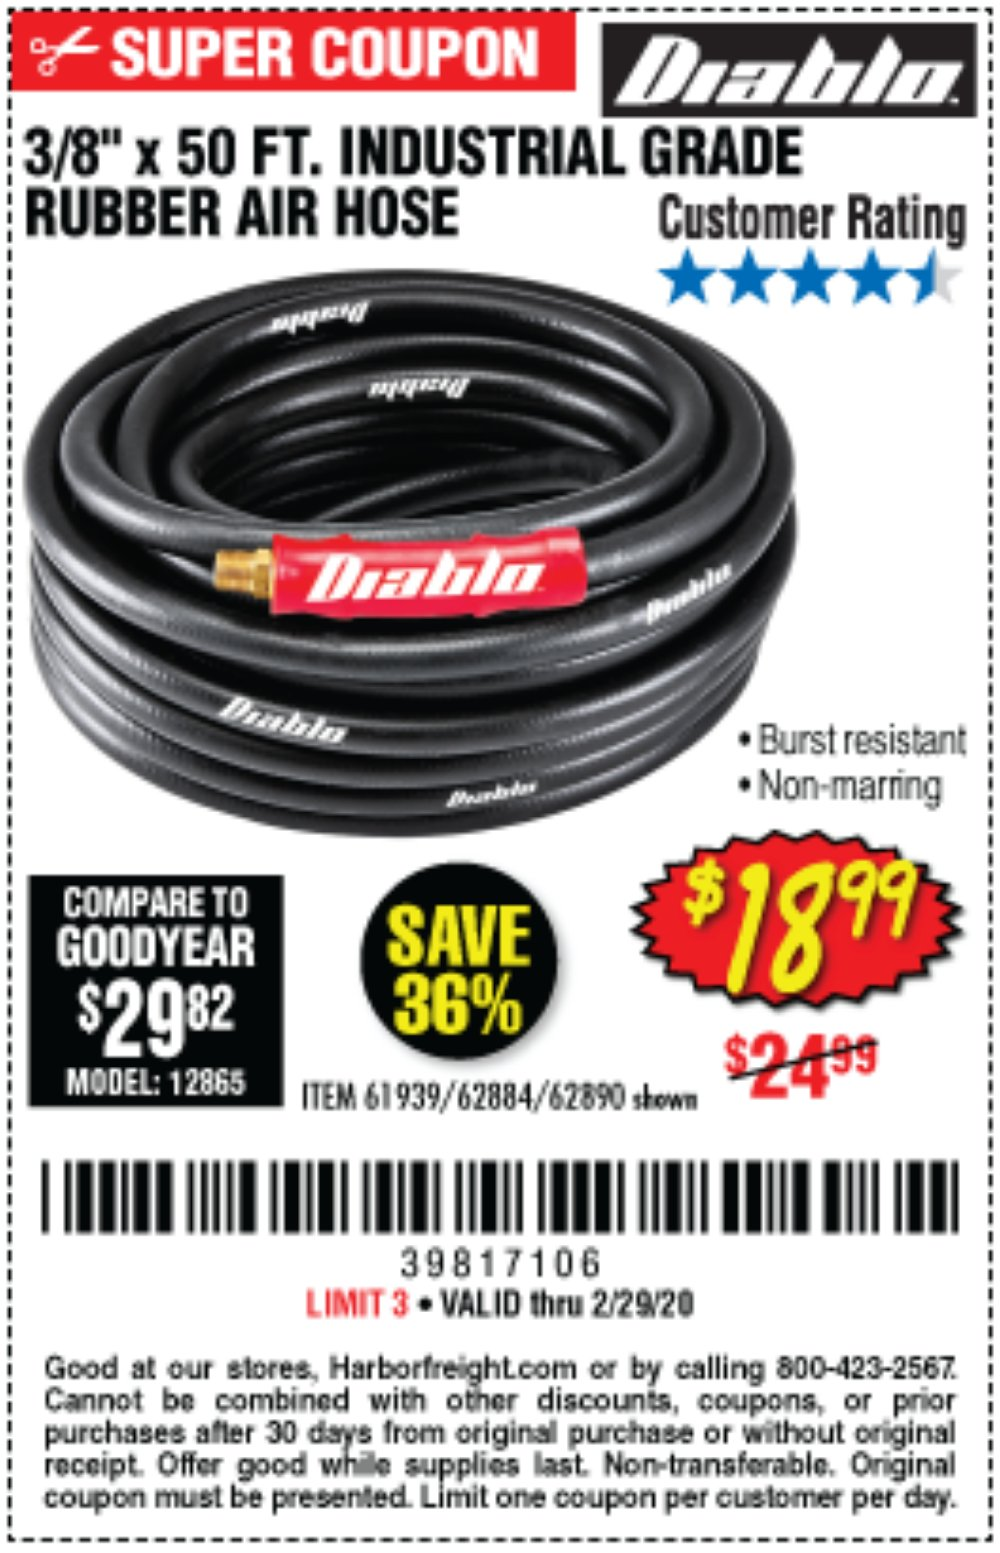 Harbor Freight Coupon, HF Coupons - Diablo 3/8